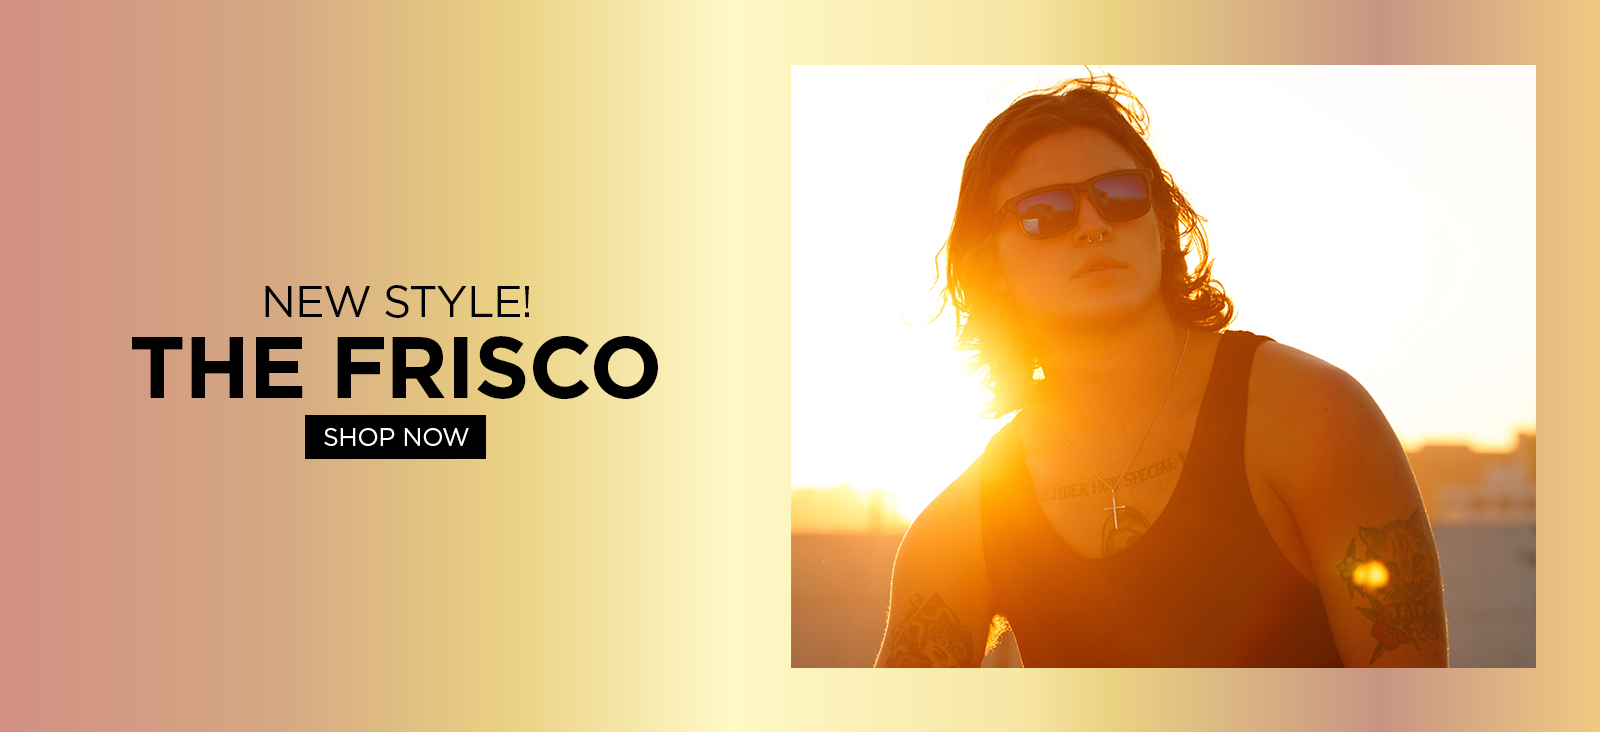 New Style - The Frisco